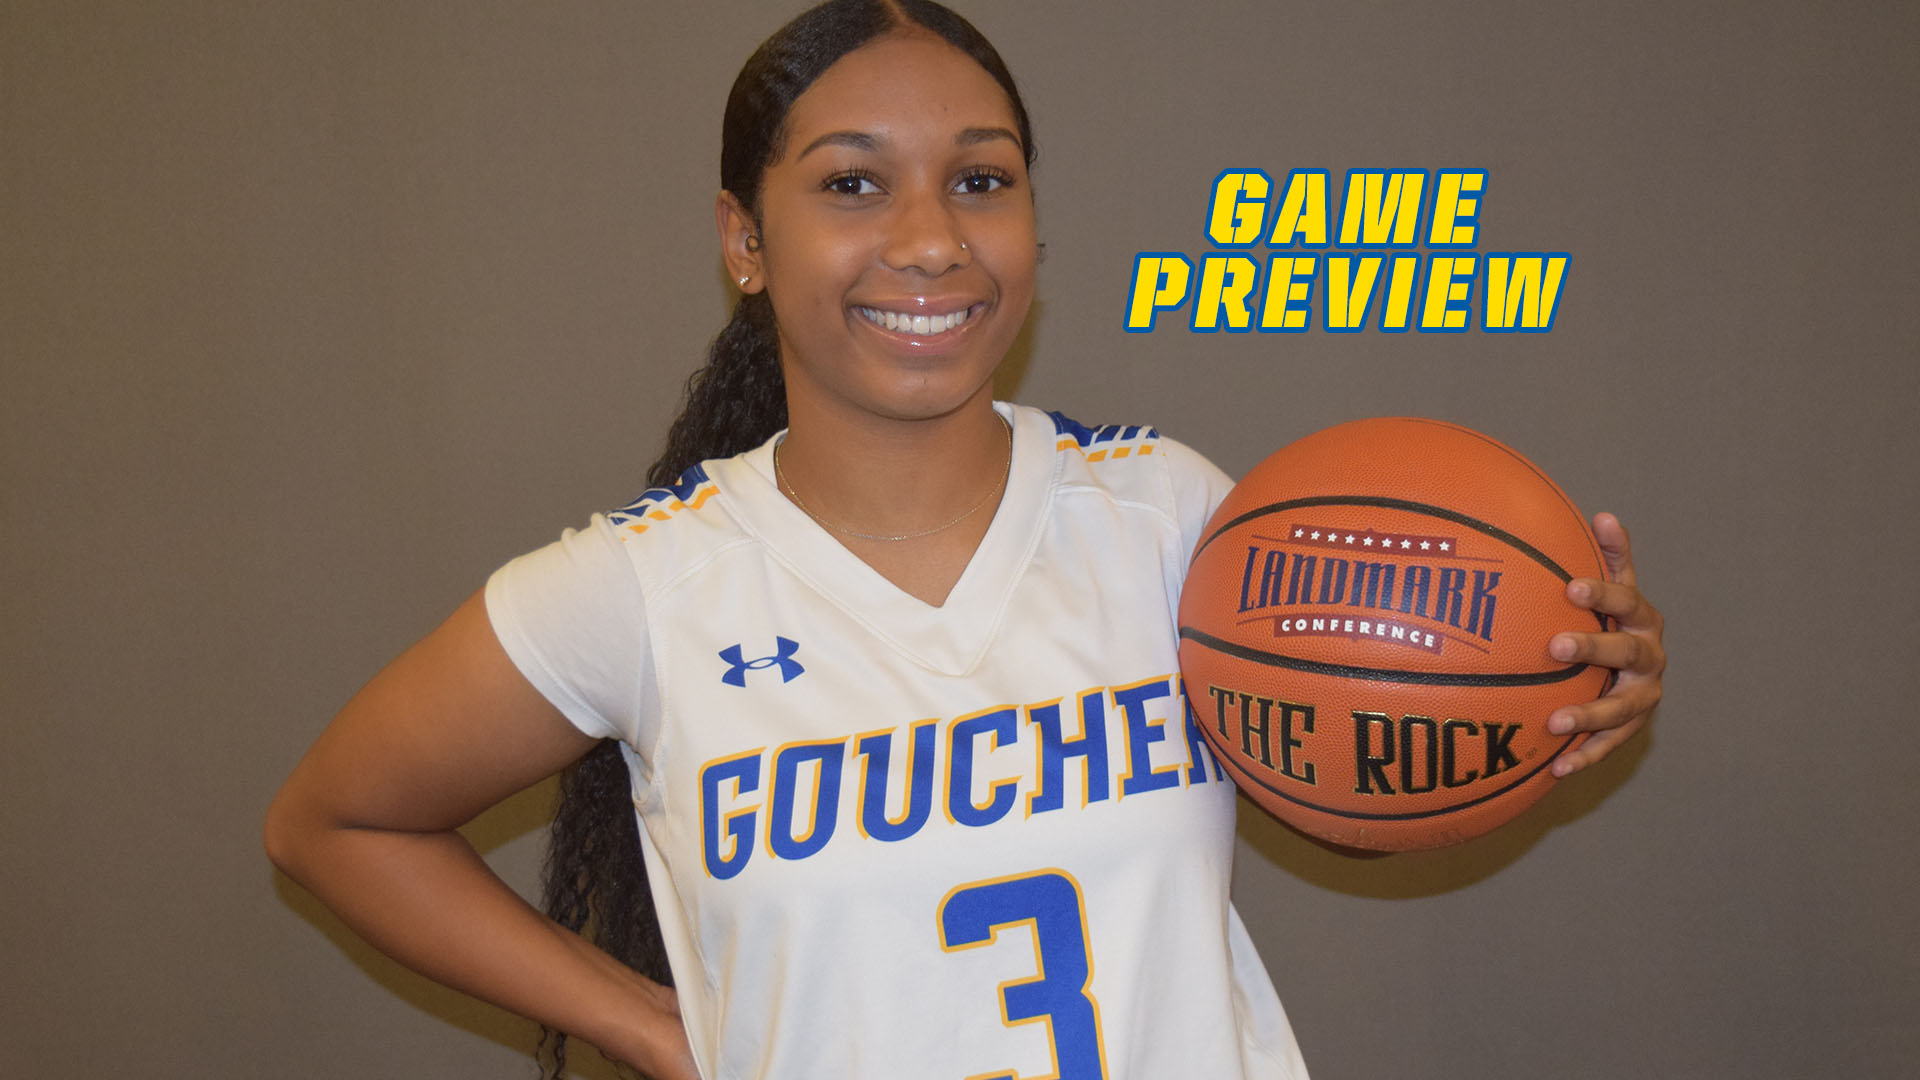 Goucher Women's Basketball 2019-20 Season Winds Down At Scranton On Saturday